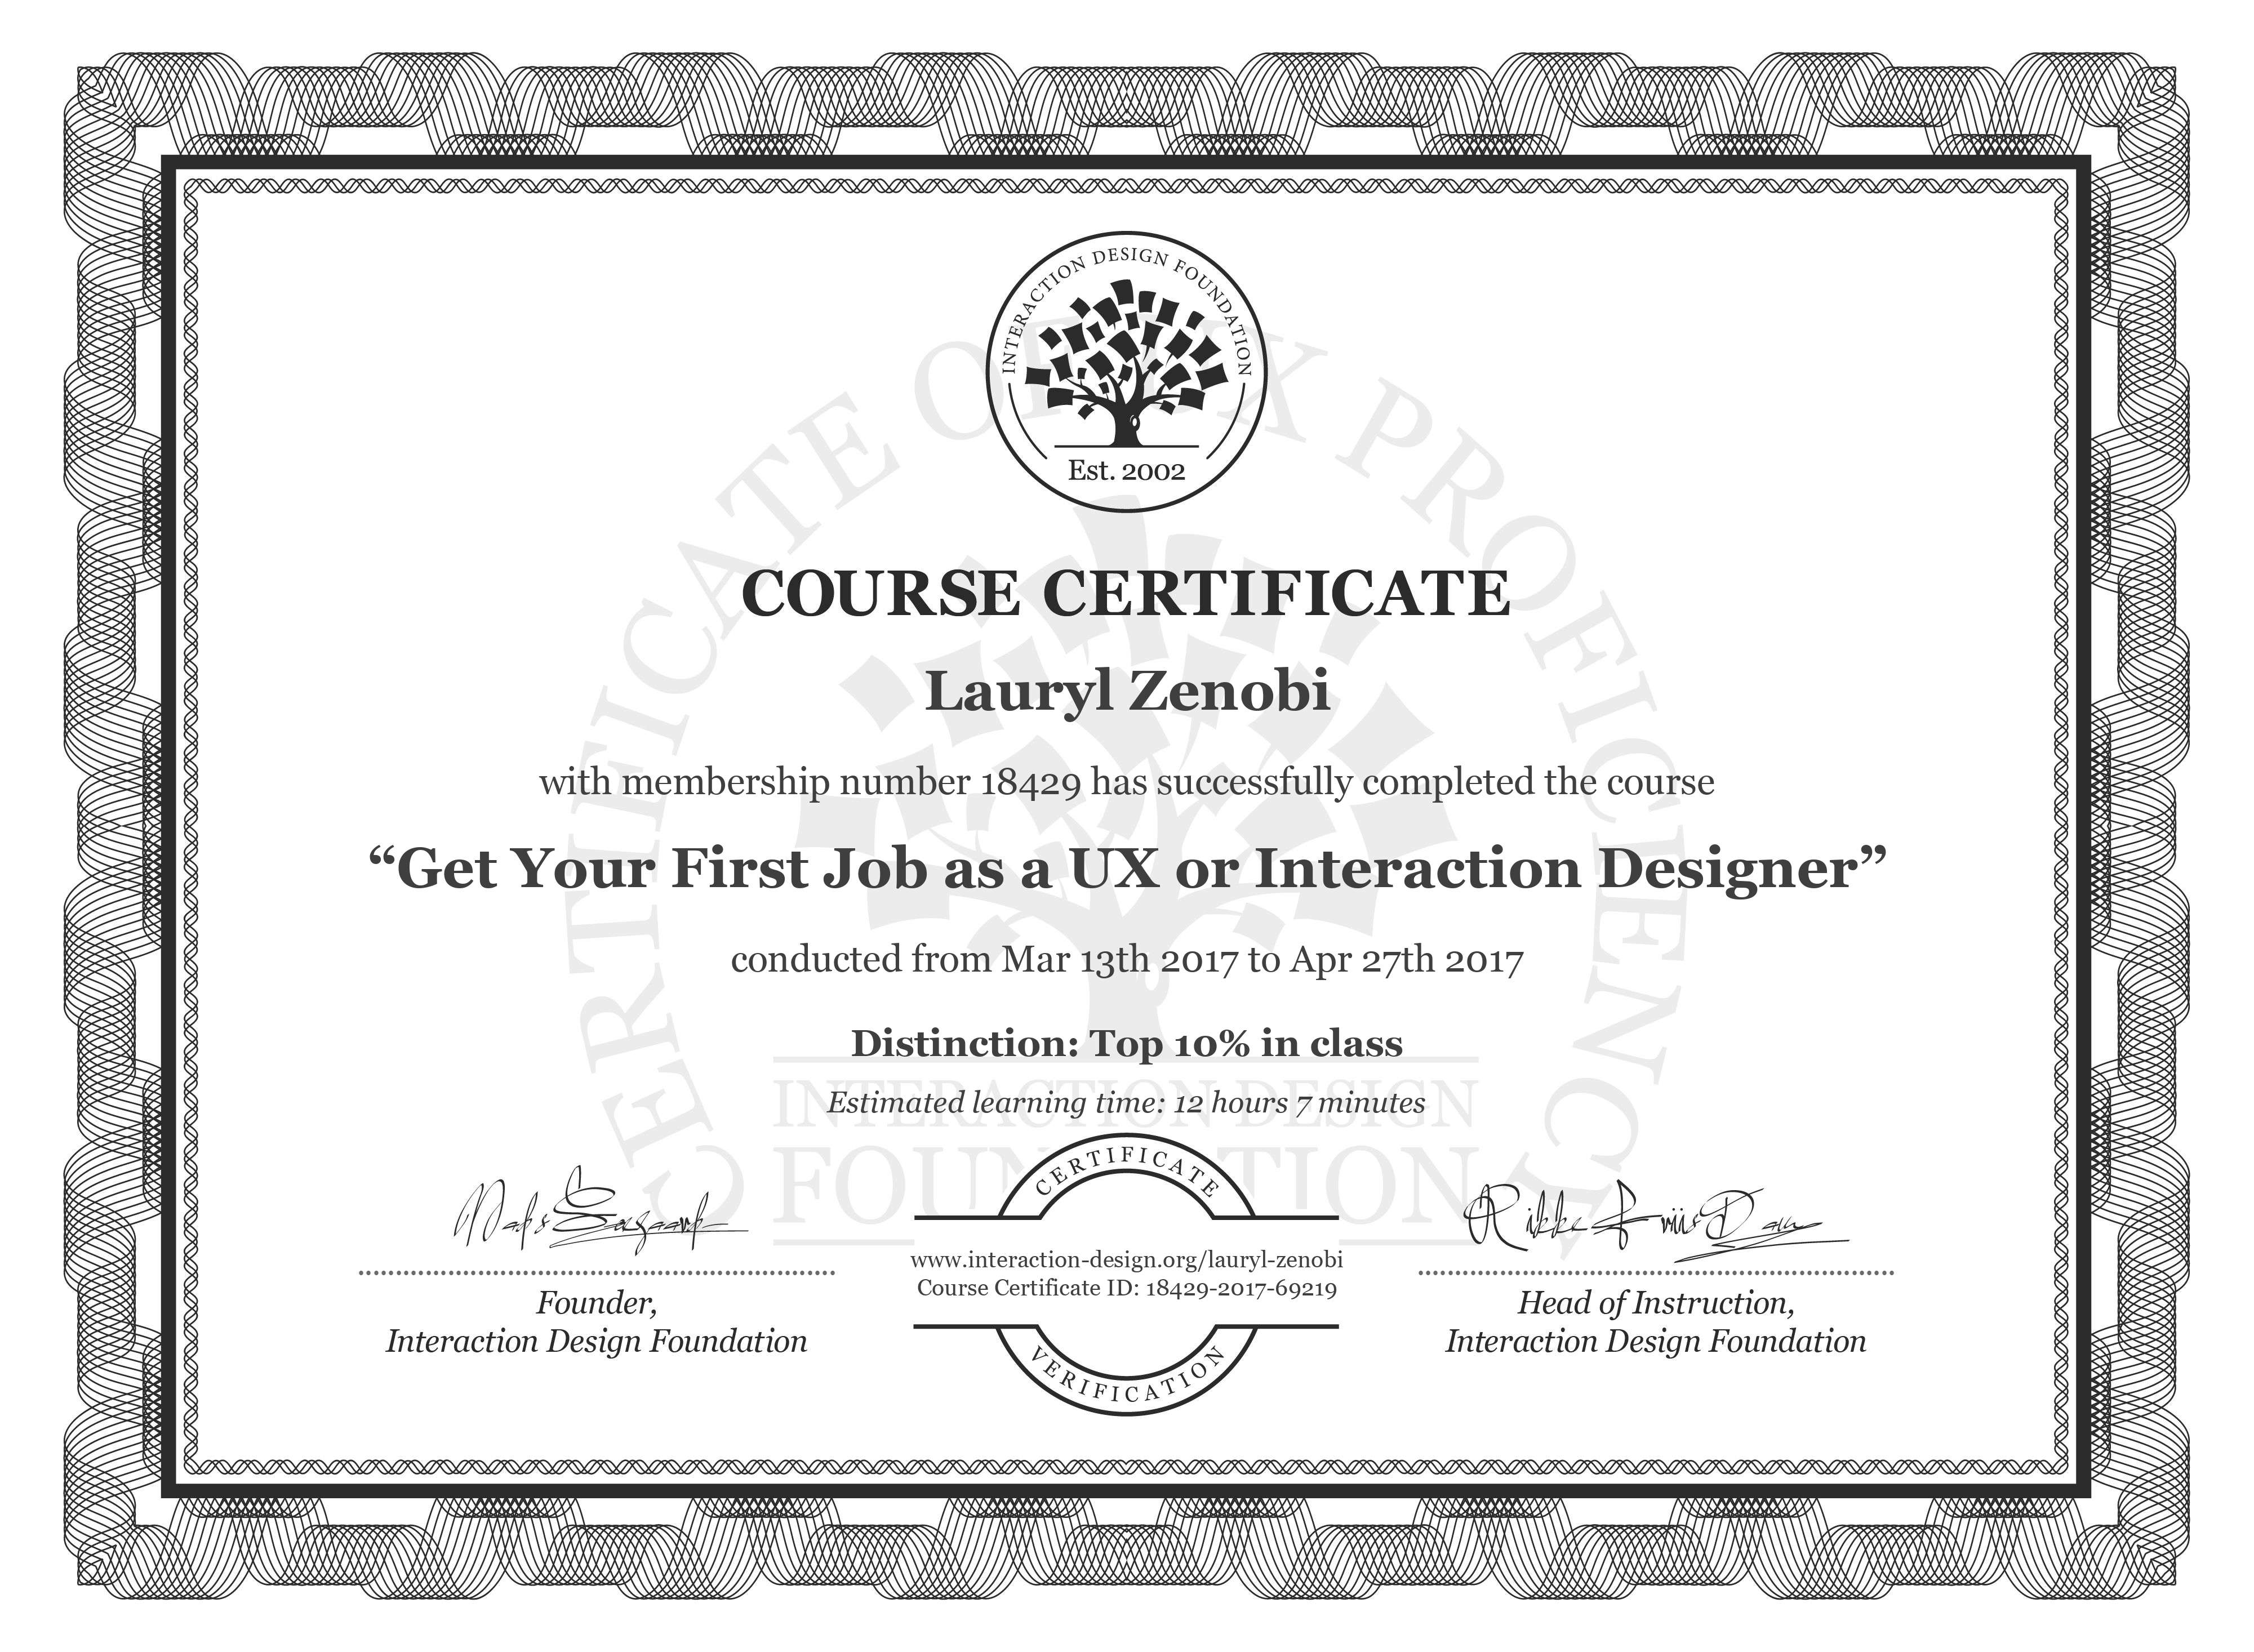 Lauryl Zenobi: Course Certificate - Get Your First Job as a UX or Interaction Designer